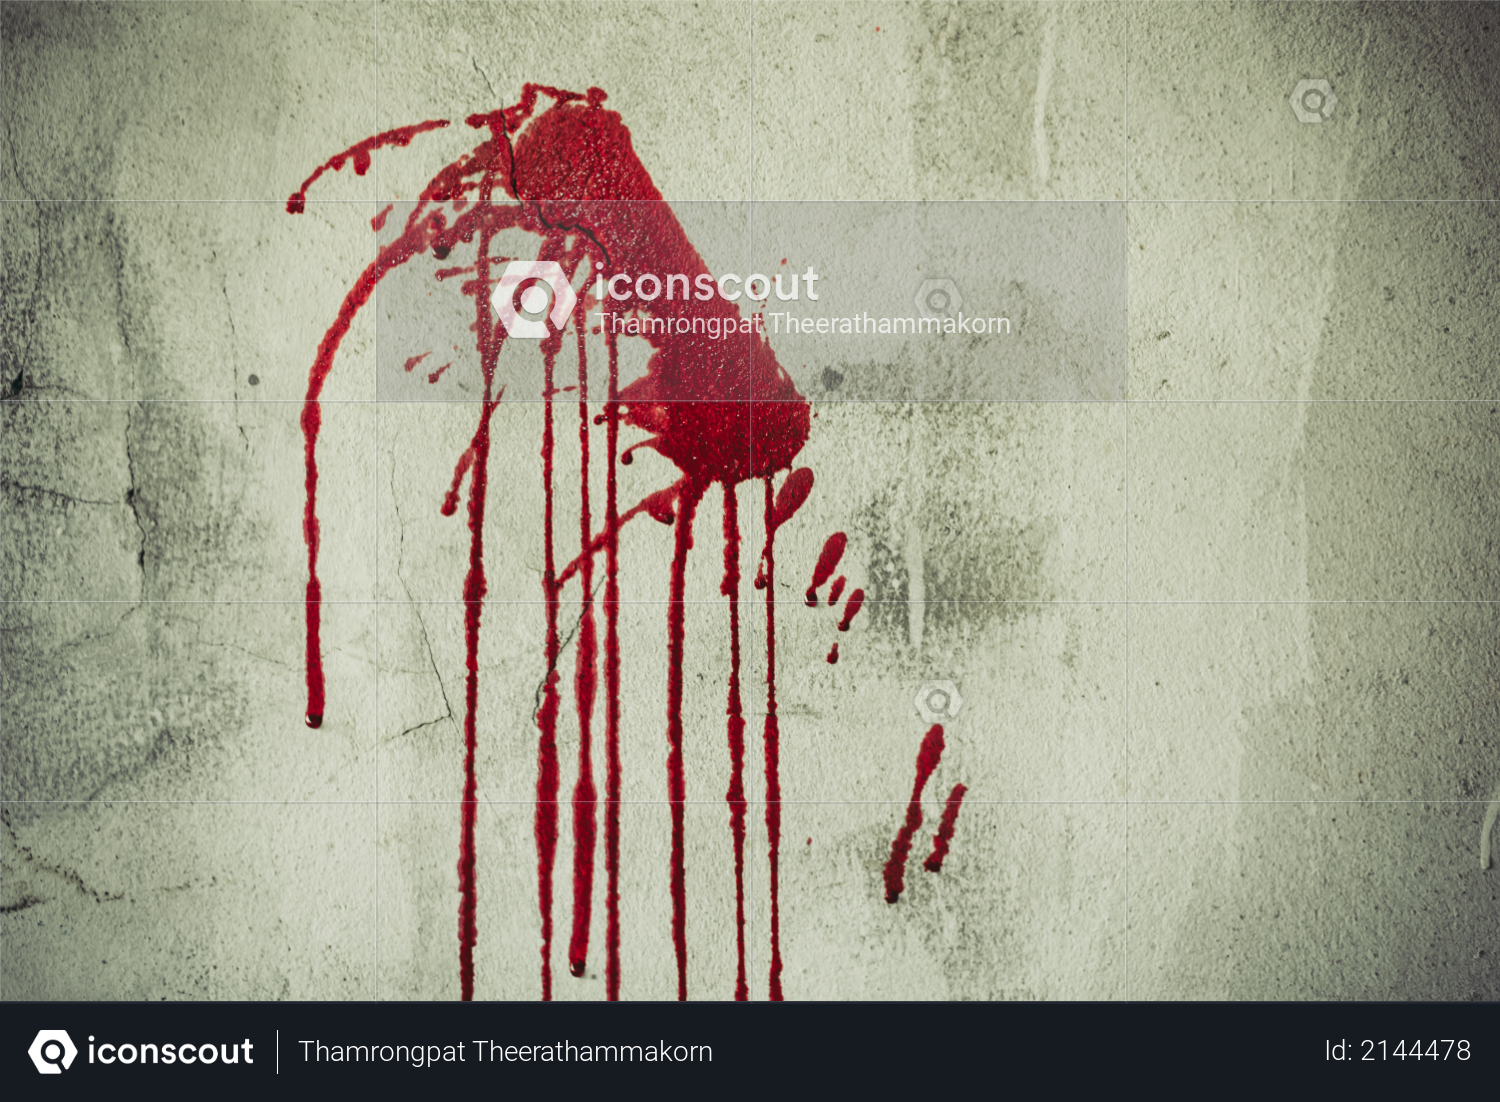 Splatter of red blood on wall in abandoned house, Halloween festival and event, Murder and Killer theme, Background for horror and scream film presentation - Criminal and social issues concept Photo